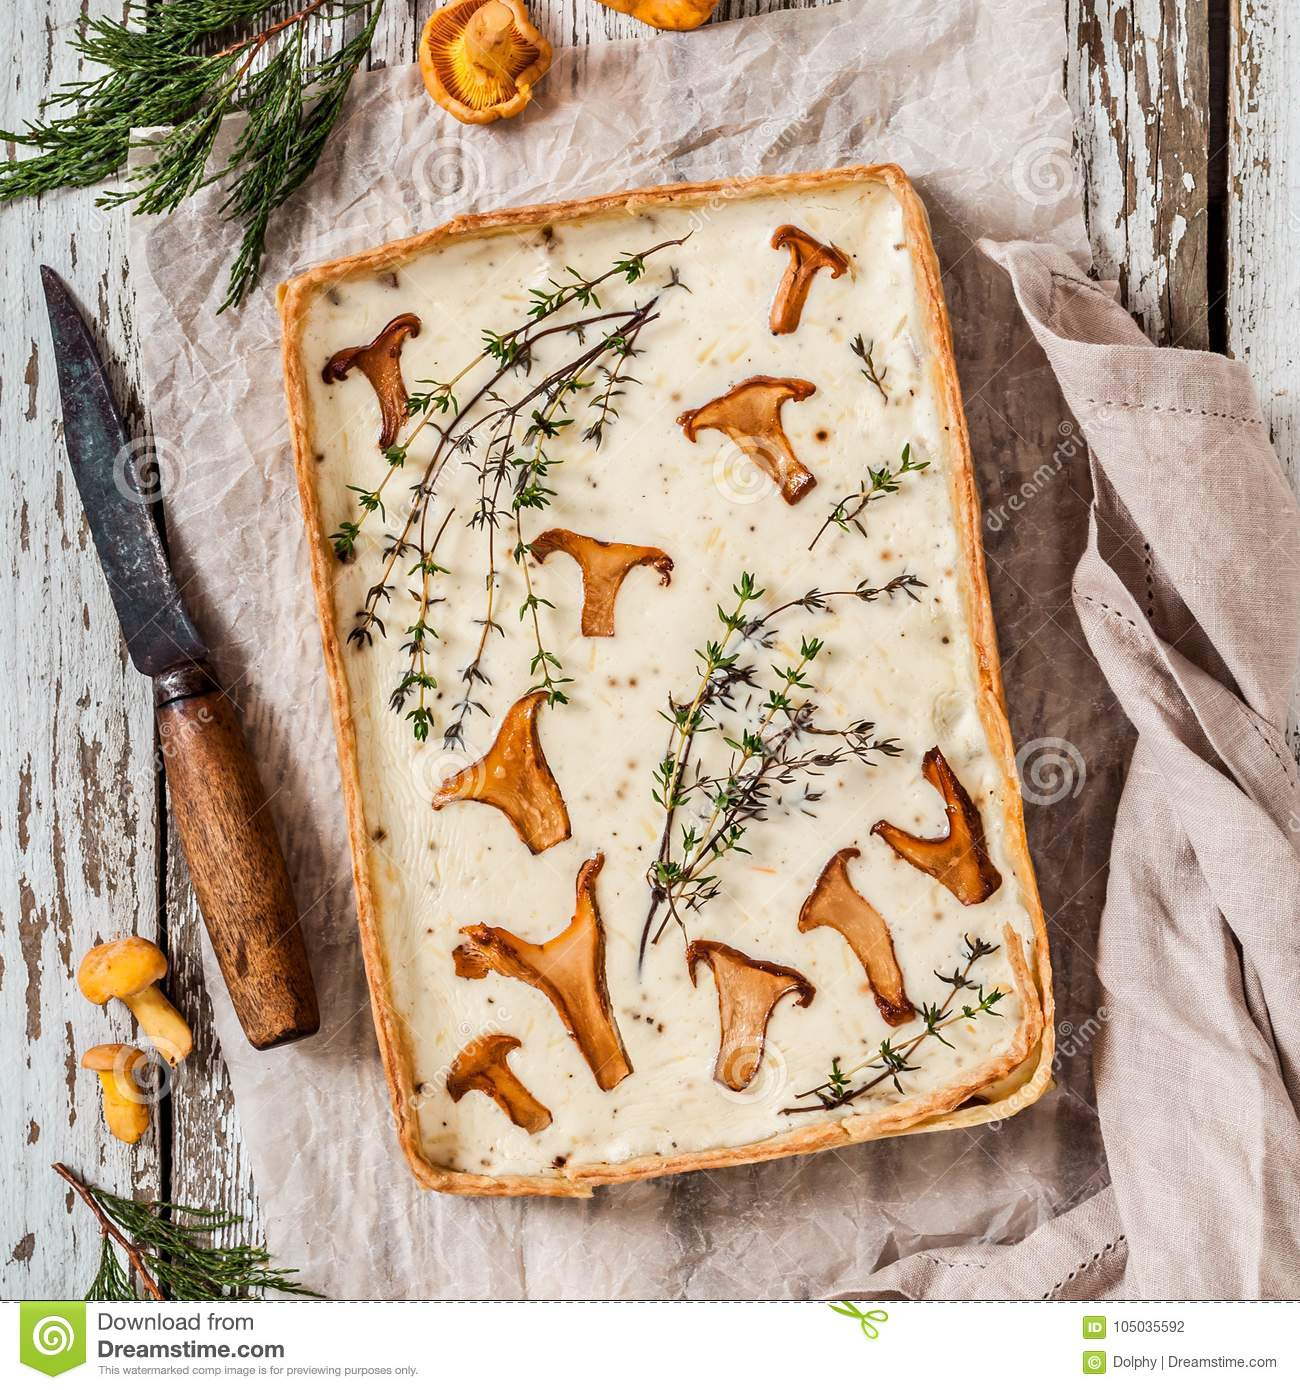 Chanterelle and Thyme Tart